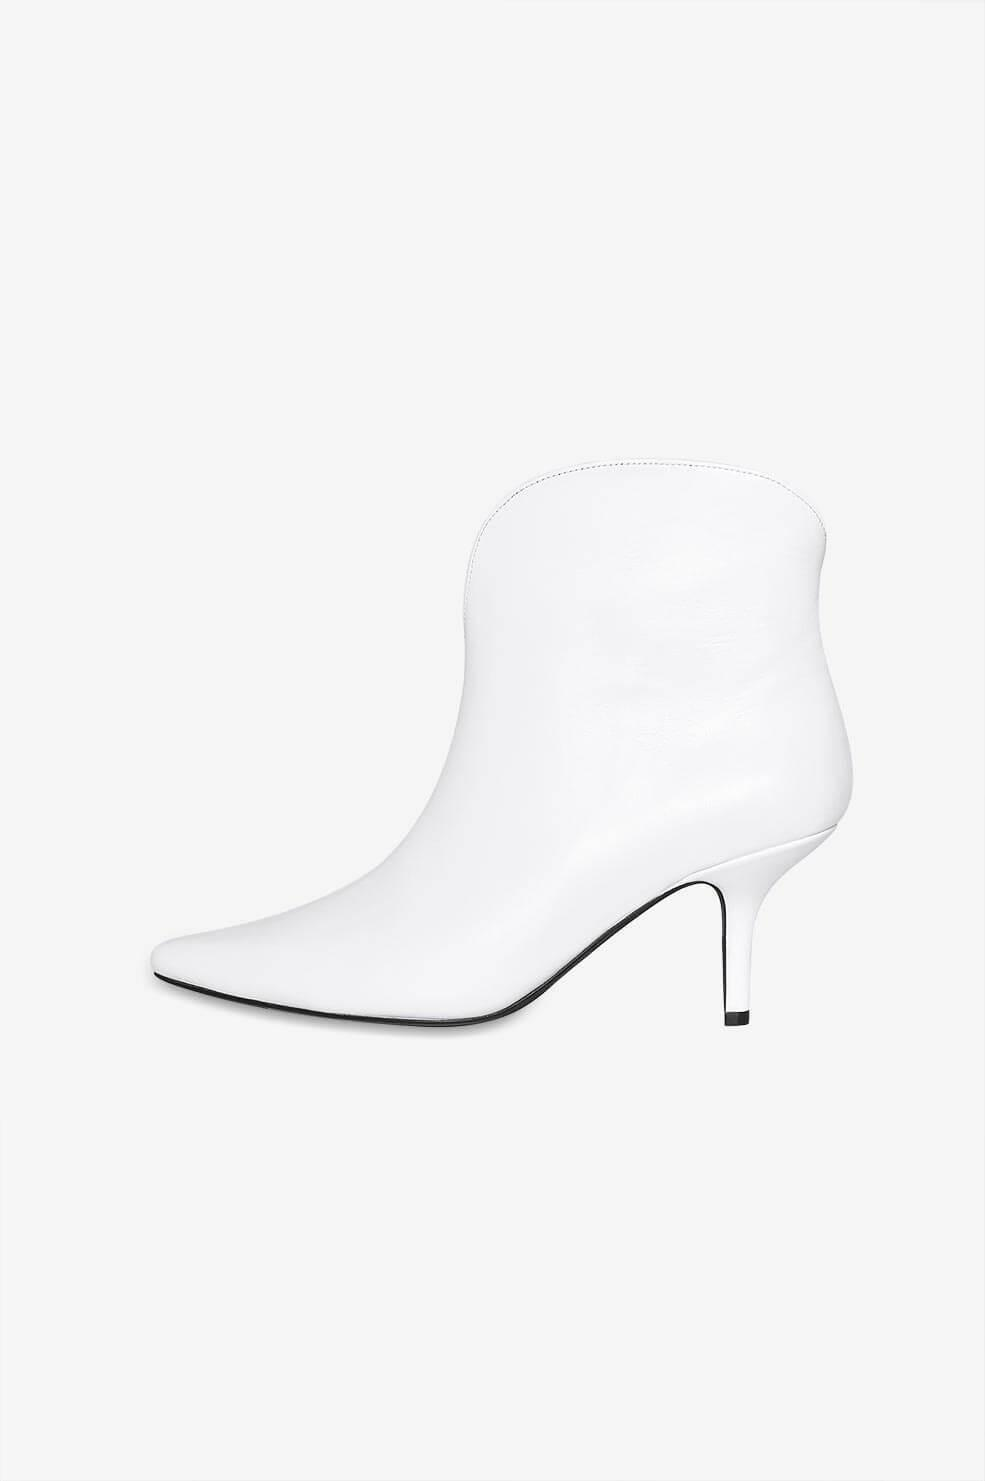 Anine Bing Annabelle Leather Boots in